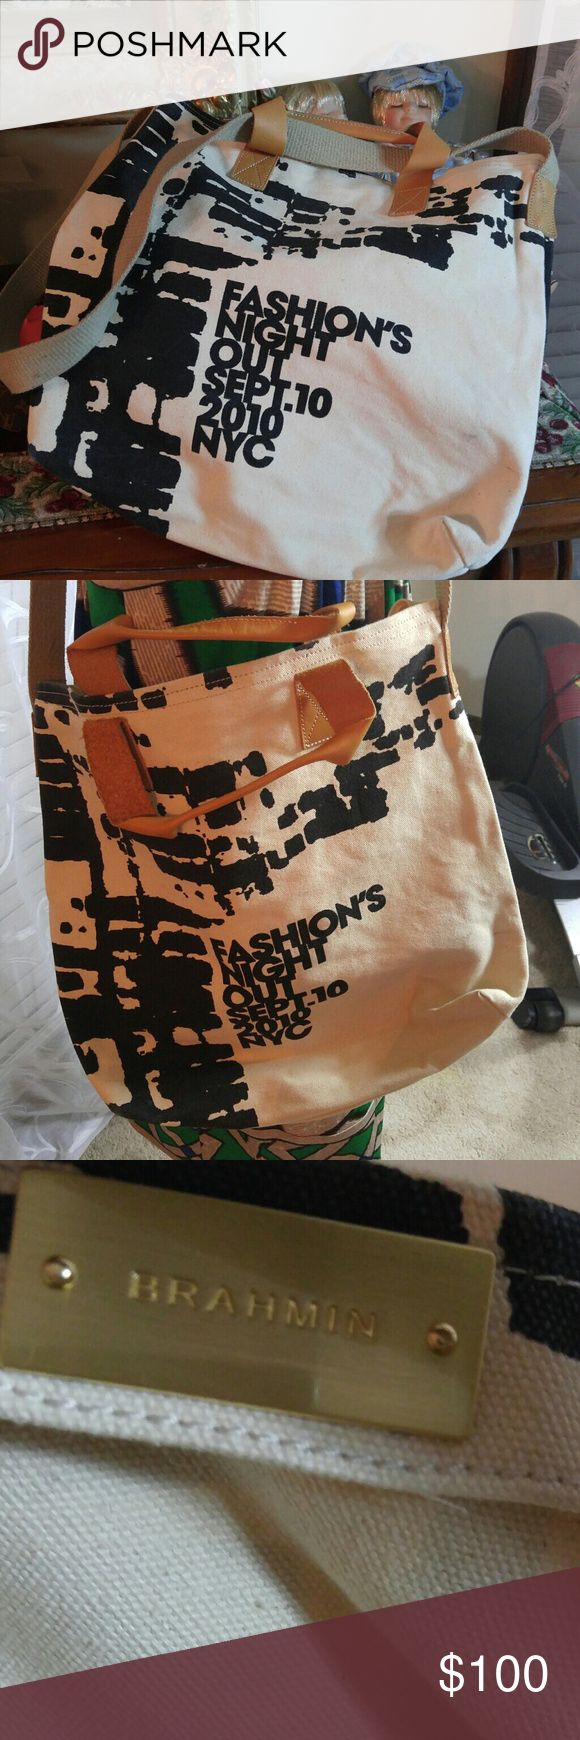 BRAHMIN Canvas Large Crossbody bag Authentic in very good condition. Canvas and leather. Brahmin Bags Crossbody Bags